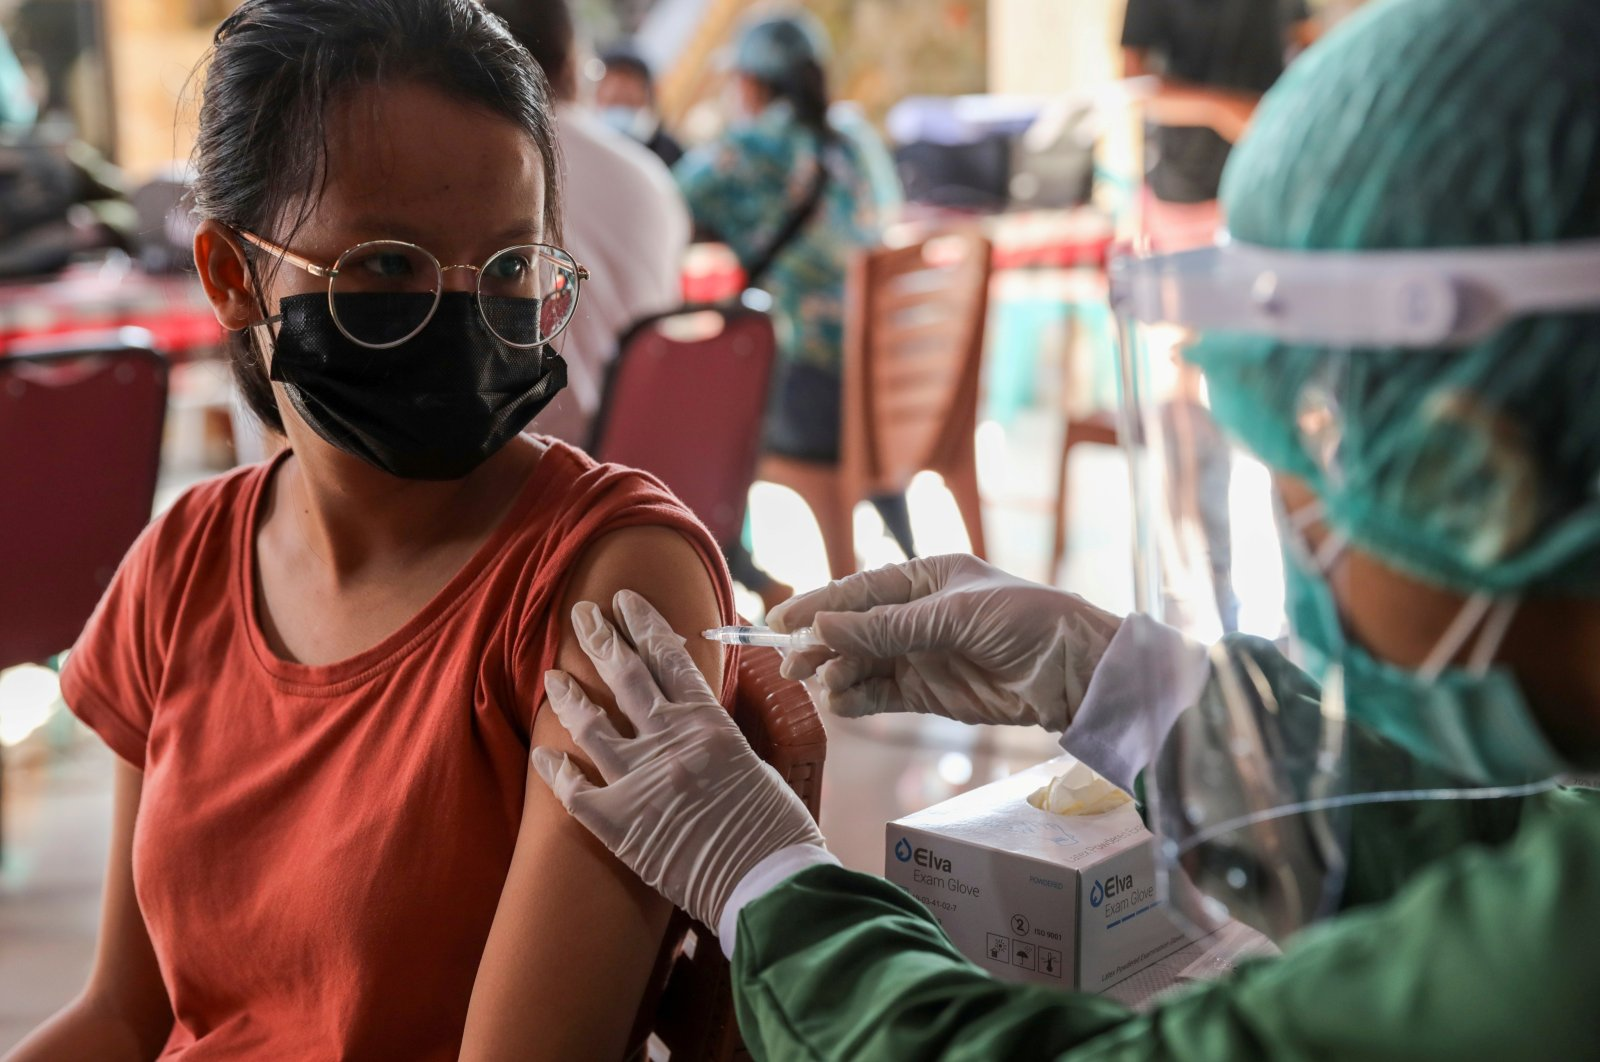 A woman receives a dose of AstraZeneca coronavirus disease vaccine during a mass vaccination program for Green Zone Tourism in Sanur, Bali, Indonesia, March 23, 2021. (Reuters Photo)